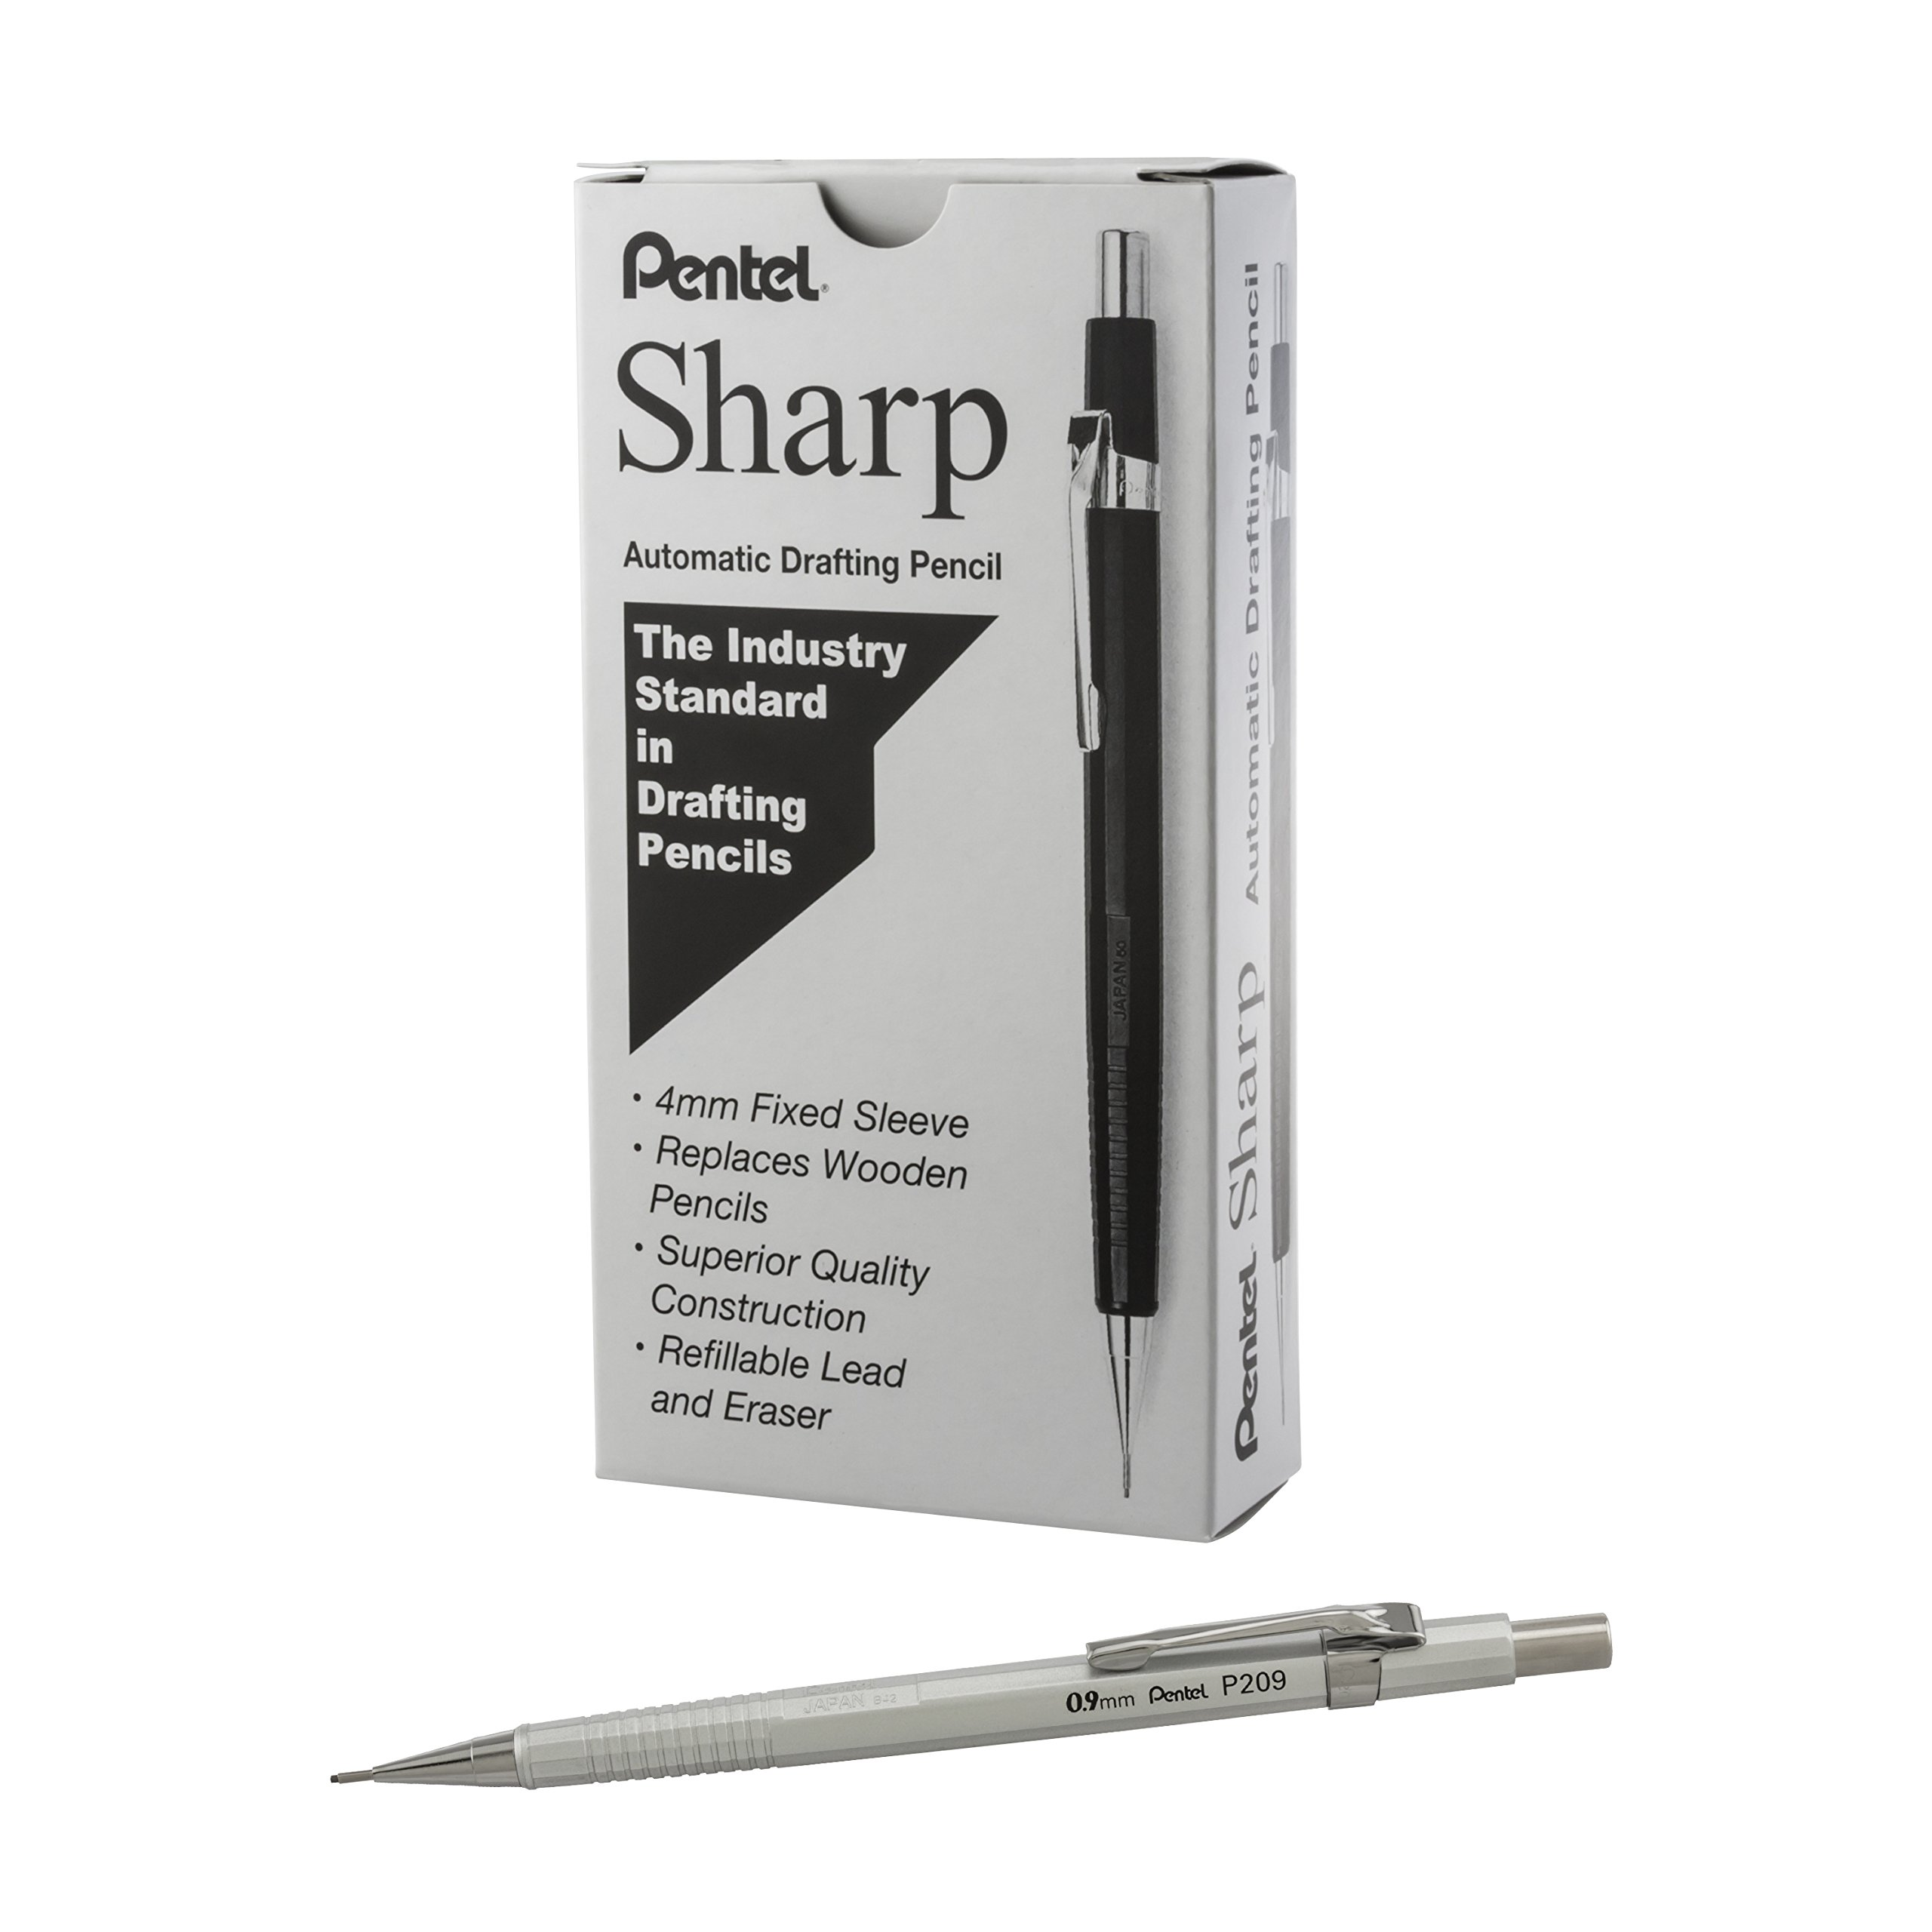 Pentel Sharp Mechanical Pencil, (0.9mm), Metallic Silver Barrel, Box of 12 (P209Z) by Pentel